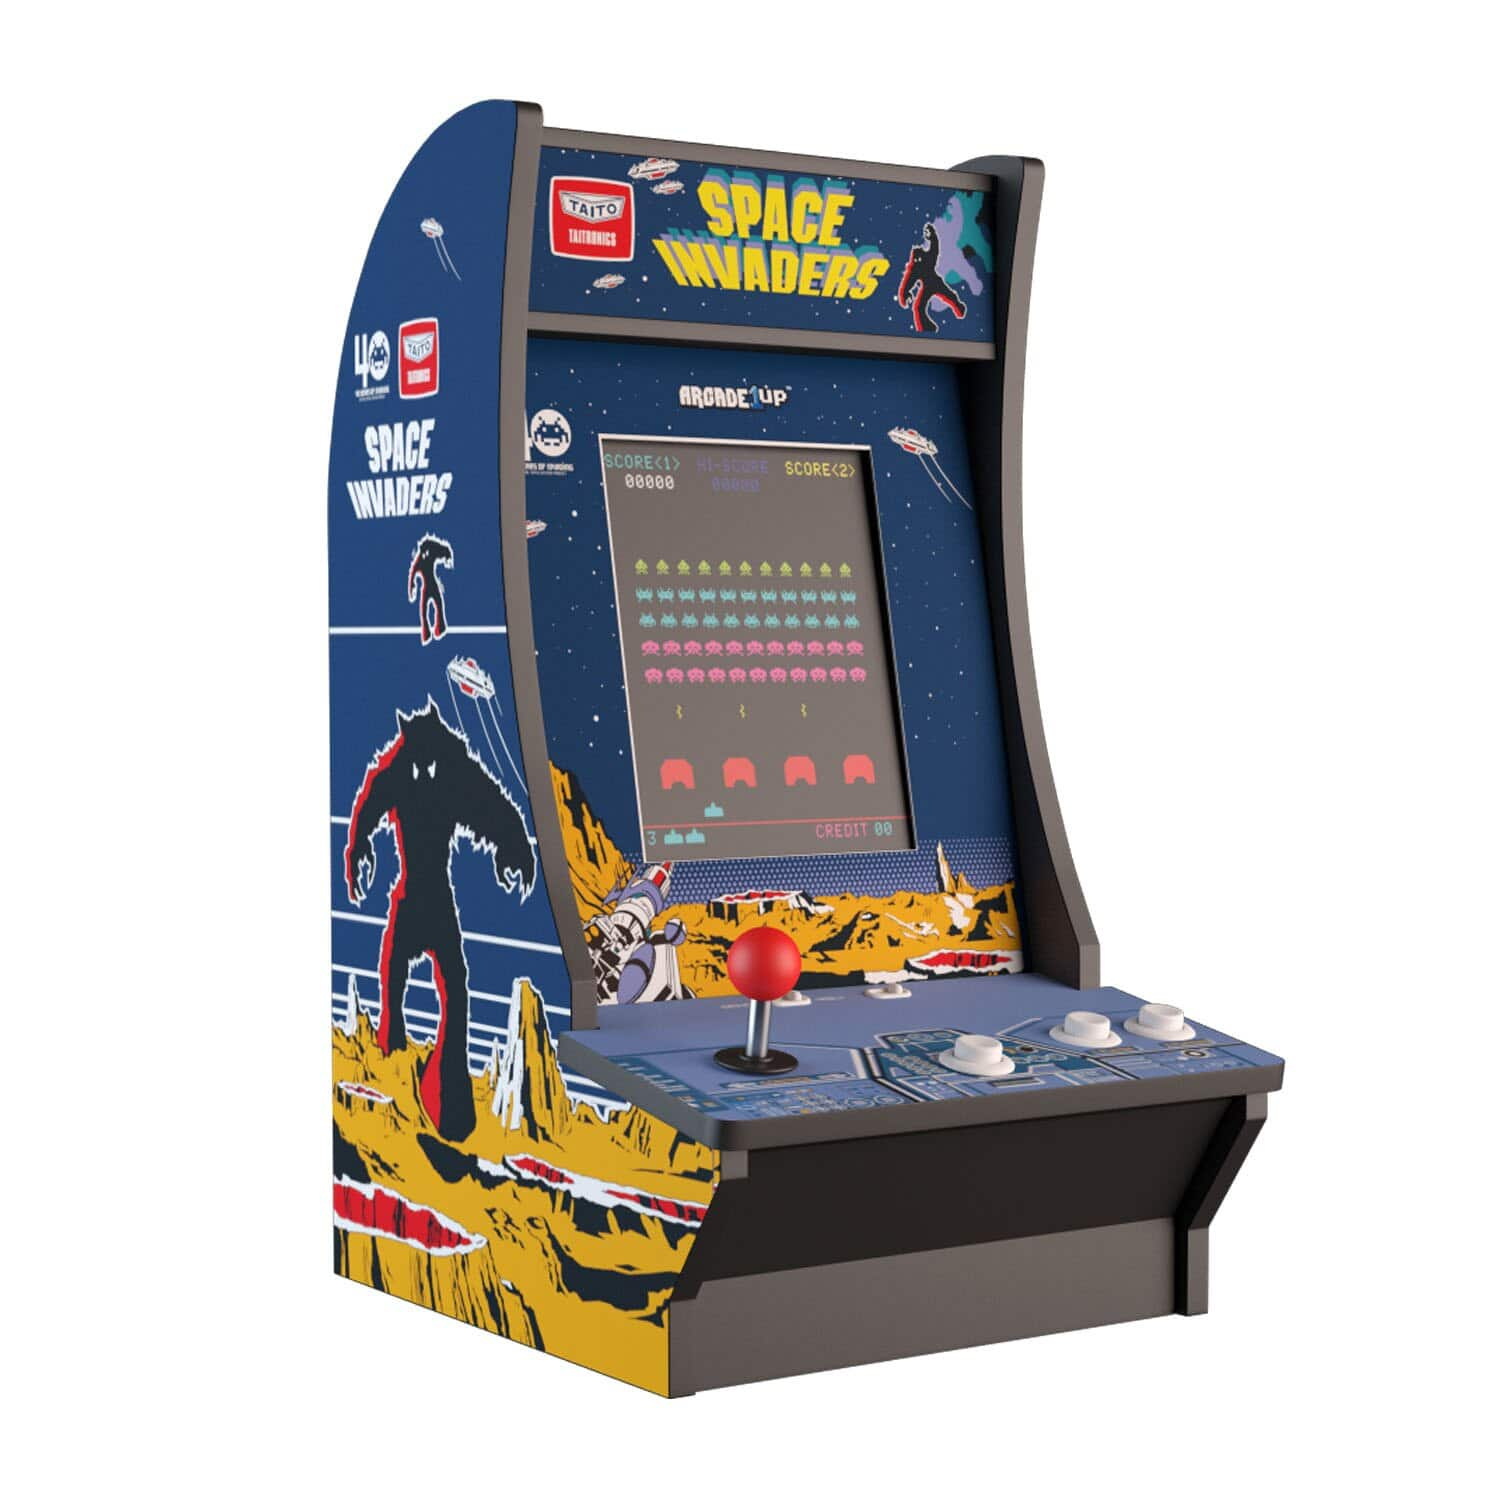 Arcade1Up Countercade (Pac-man, Centipede, Dig Dug, or Space